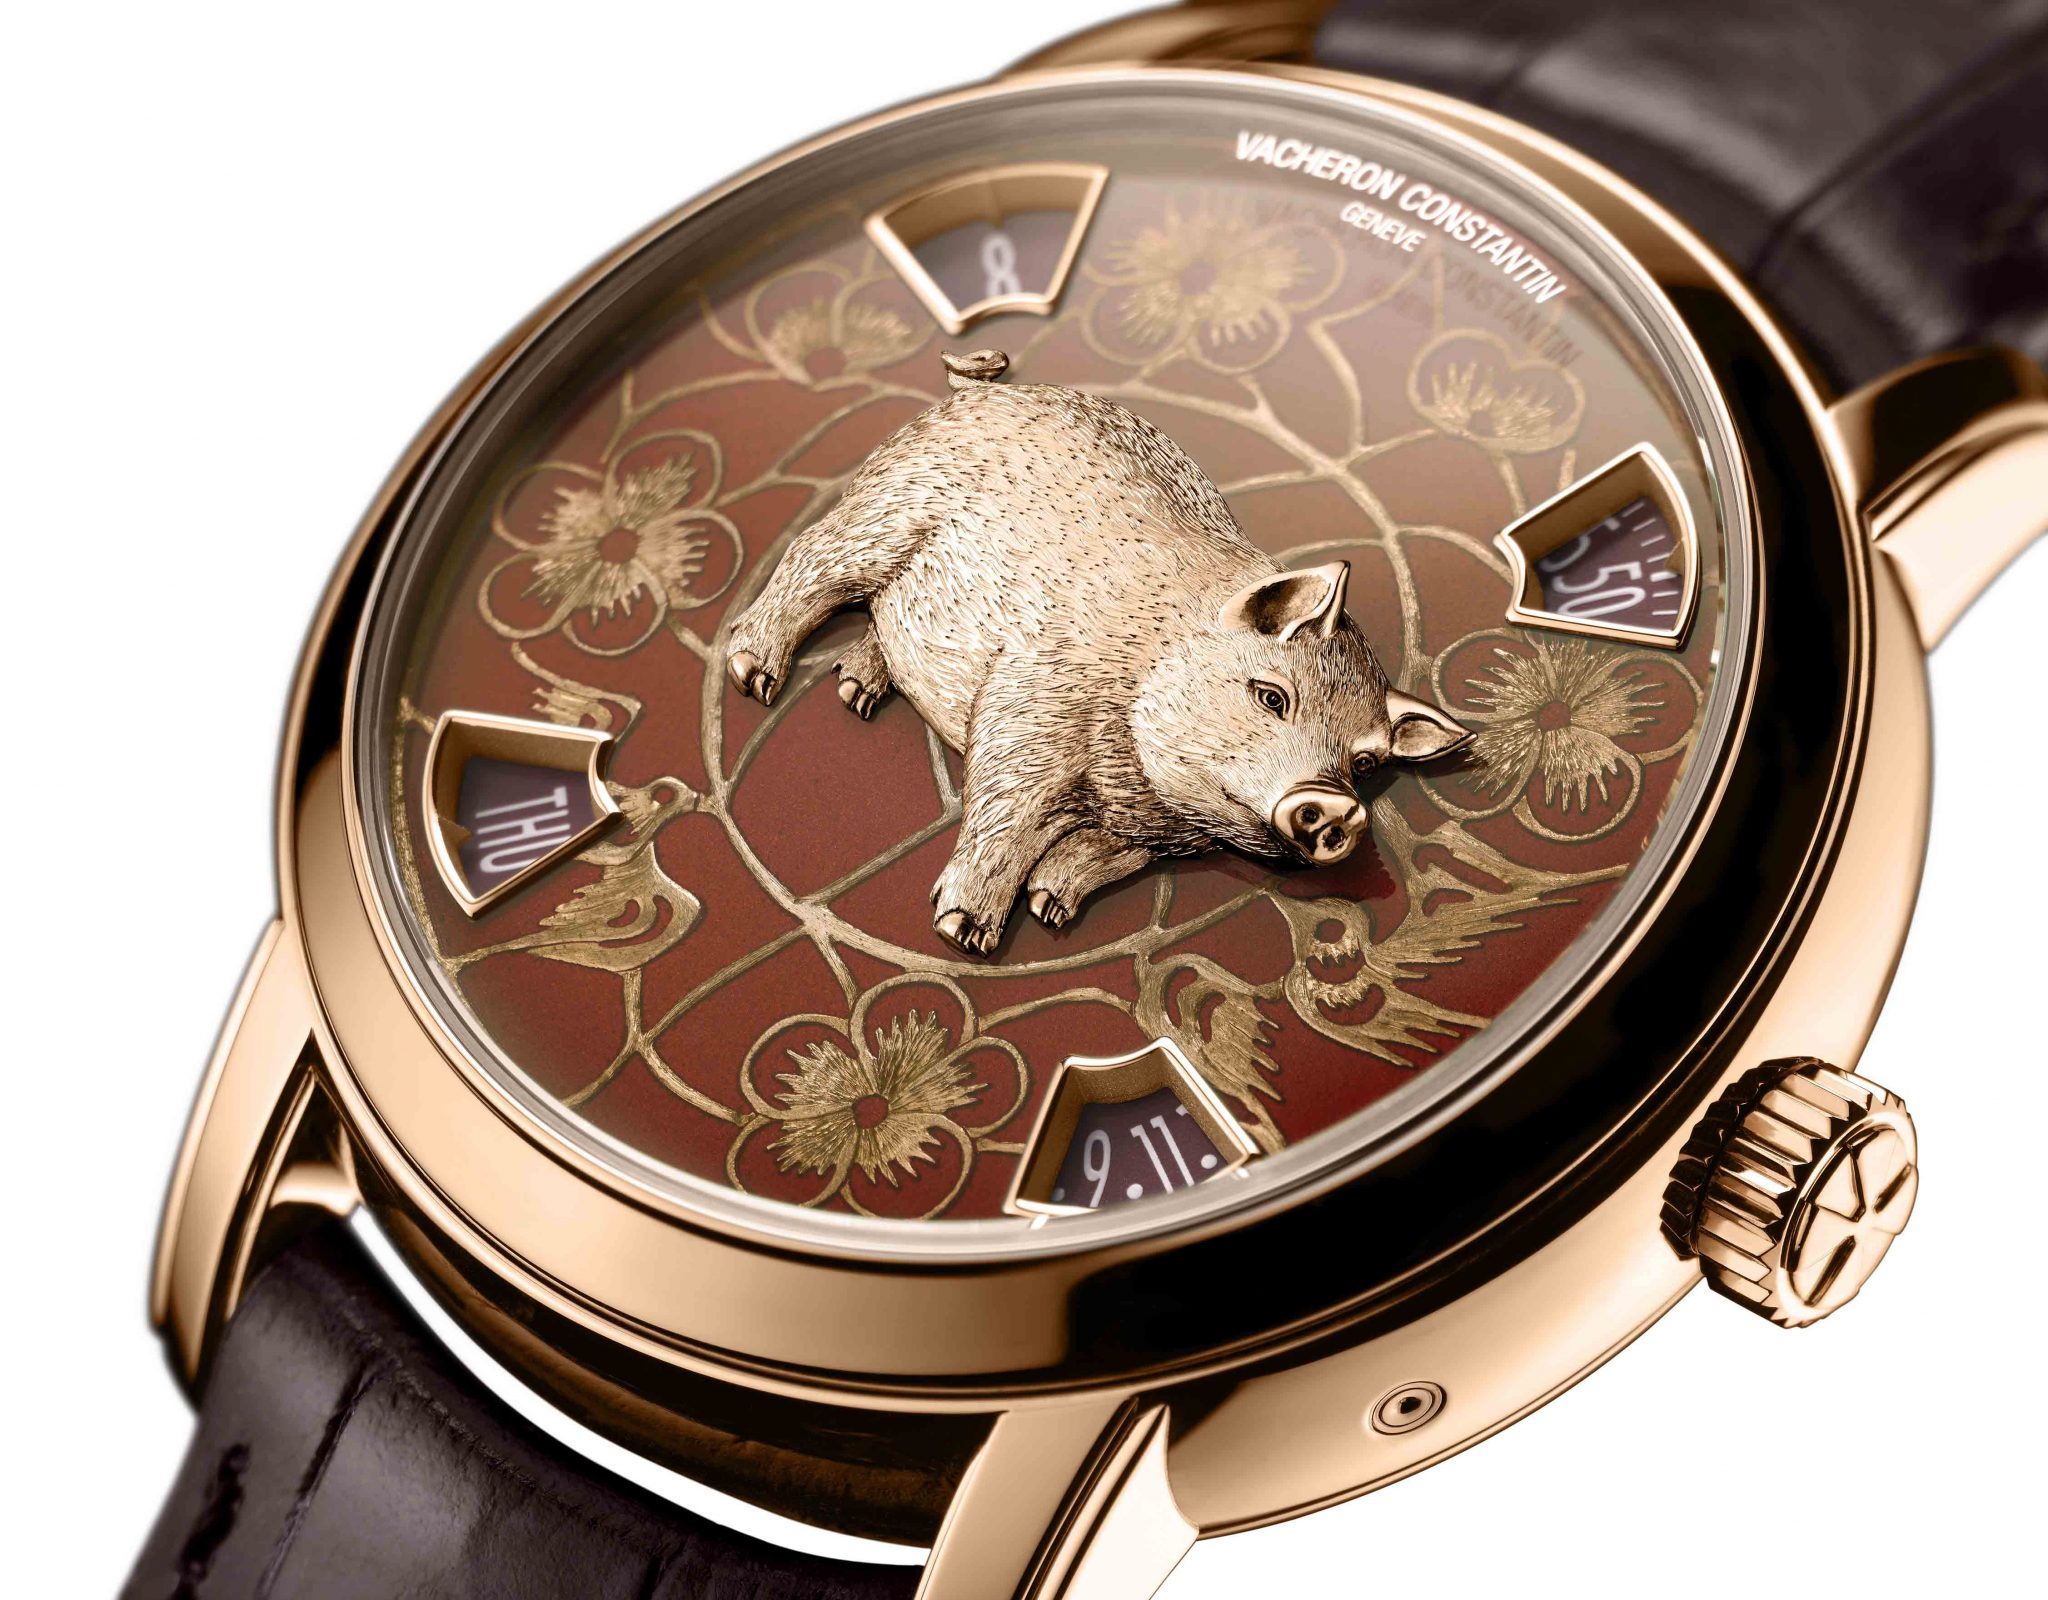 Vacheron Constantin Zodiac Chinese Year of the Pig 2019